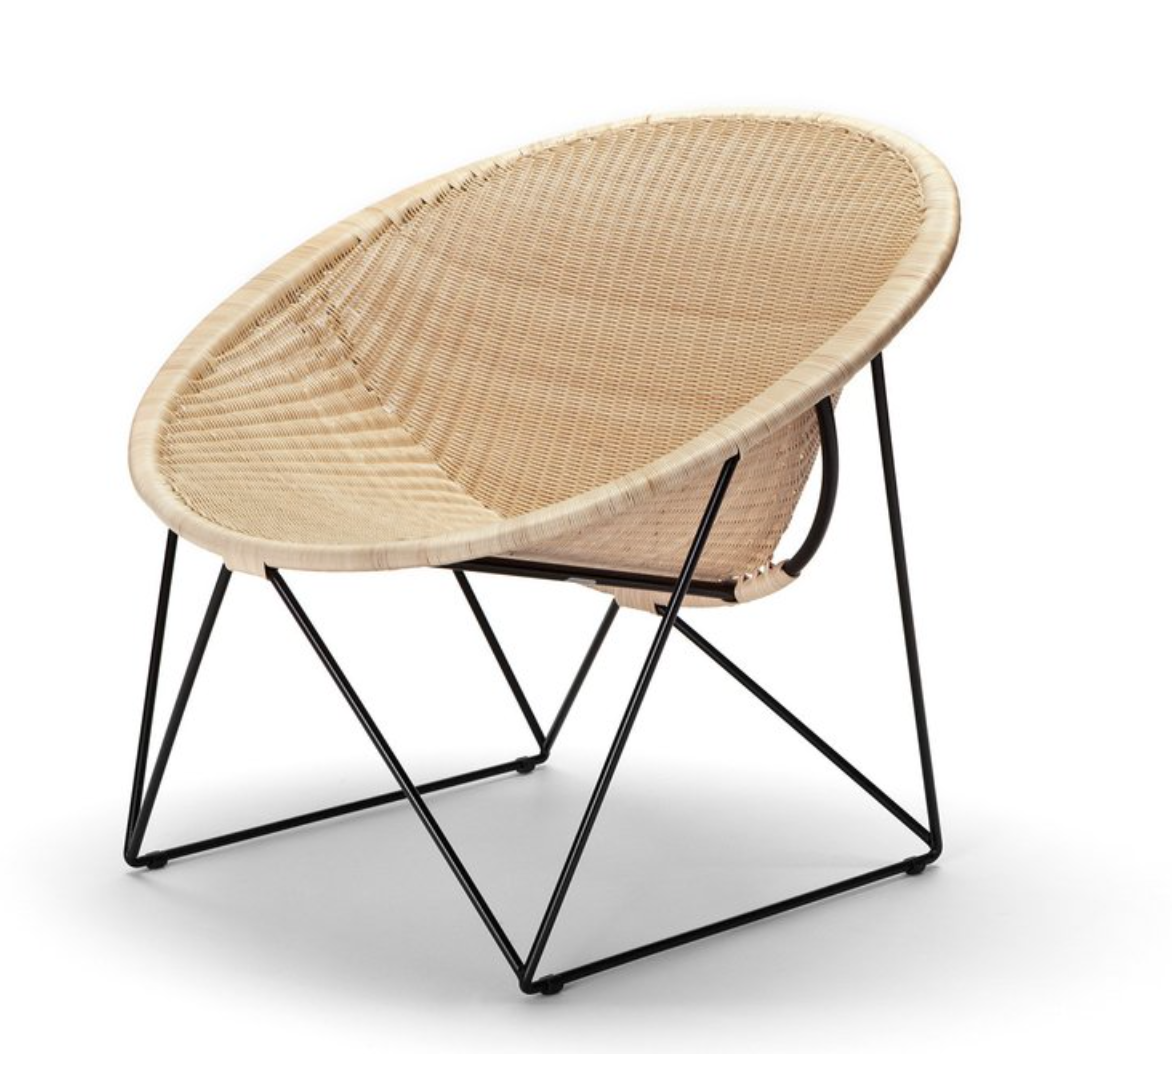 The 'C317' armchair in natural rattan and powder-coated steel. Designed in 1965 by Yuzura Yamakawa, £675, from SCP